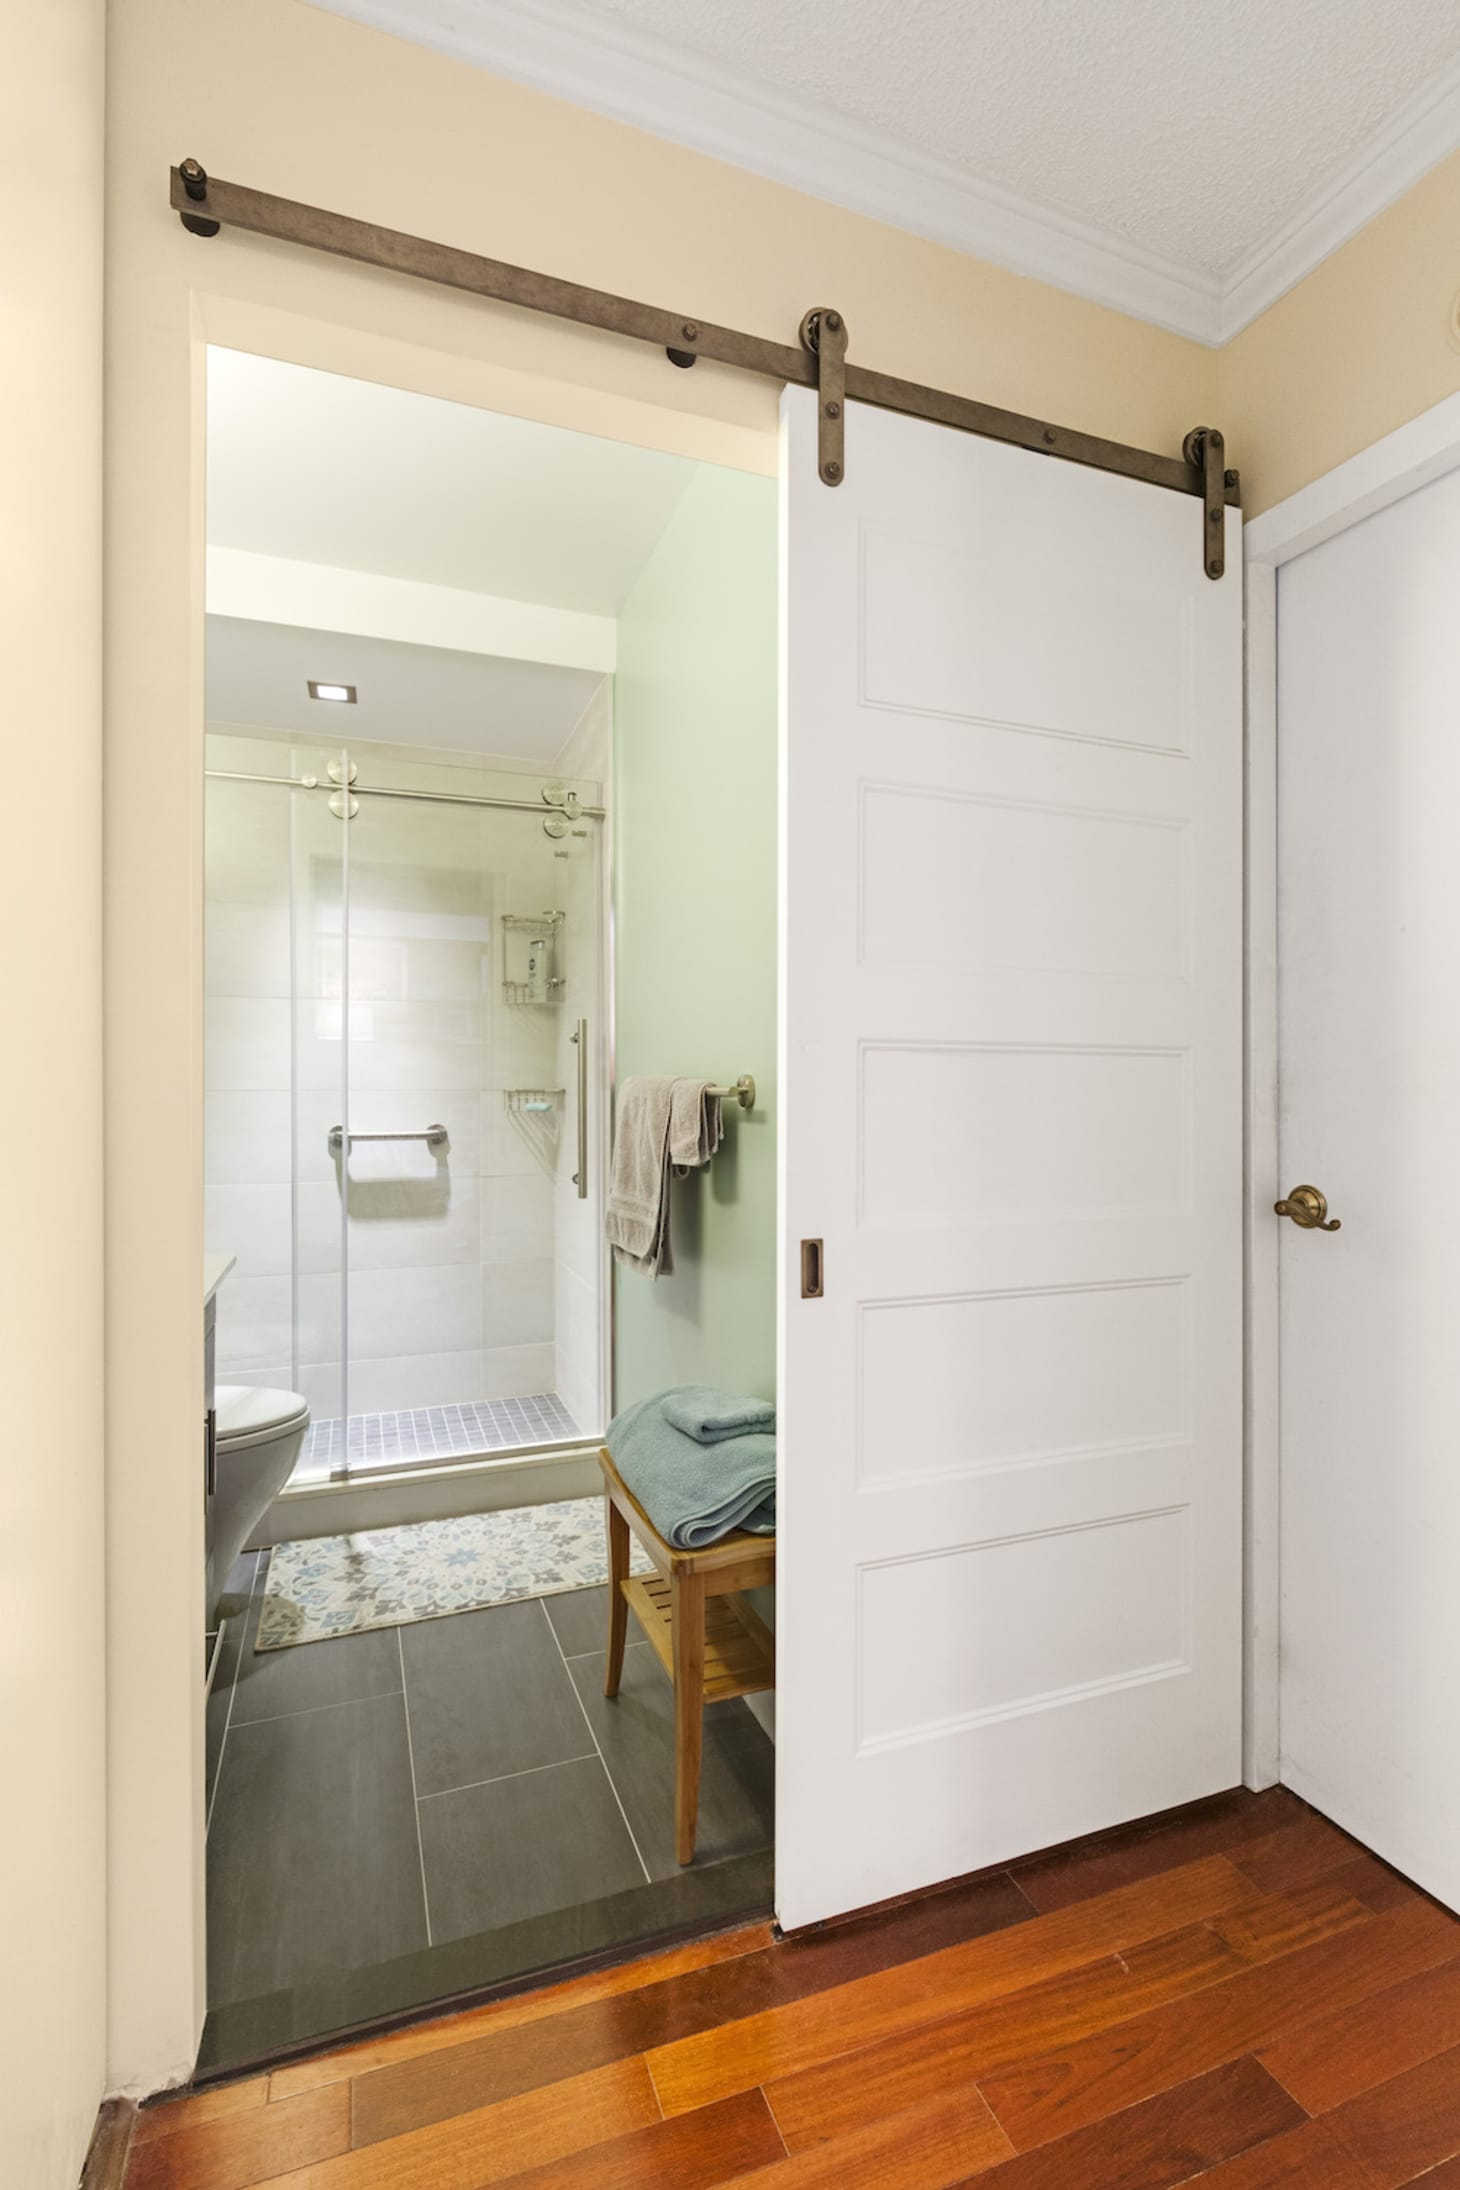 A Bathroom Remodel in a Small NYC Apartment | Apartment ... on Small Apartment Bathroom  id=98890